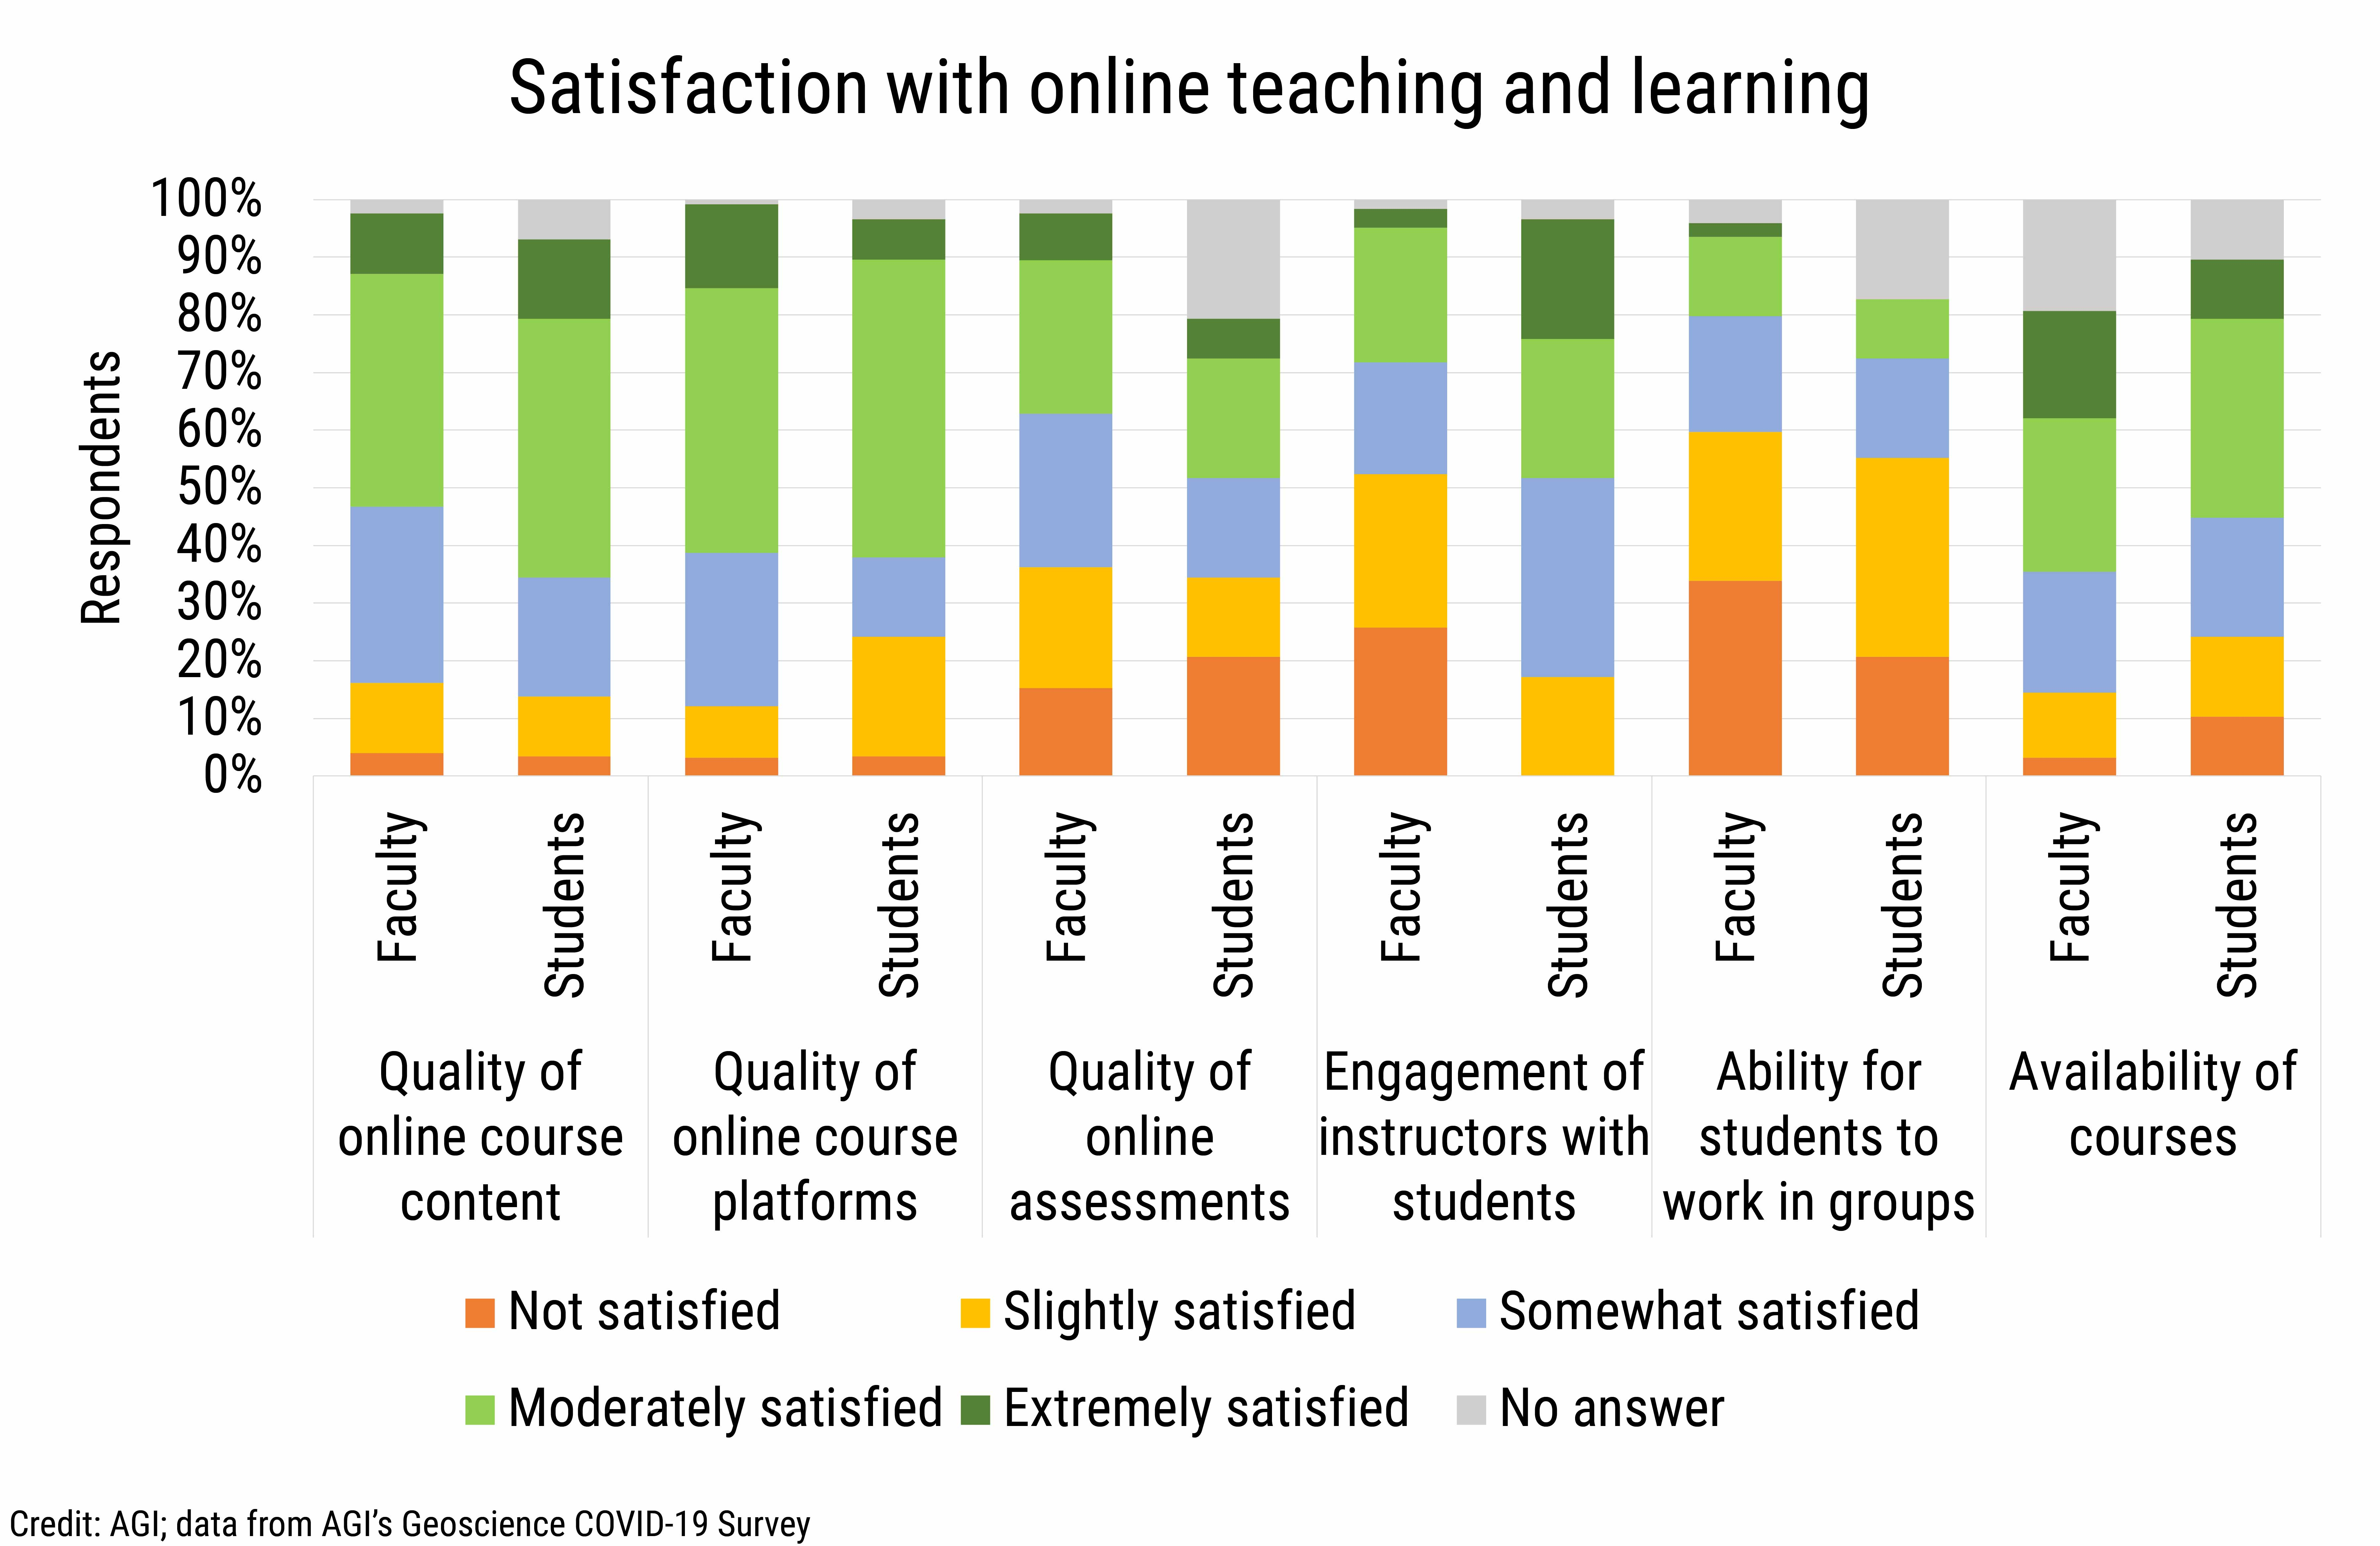 DB_2021-016 chart 06: Satisfaction with online teaching and learning (Credit: AGI; data from AGI's Geoscience COVID-19 Survey)